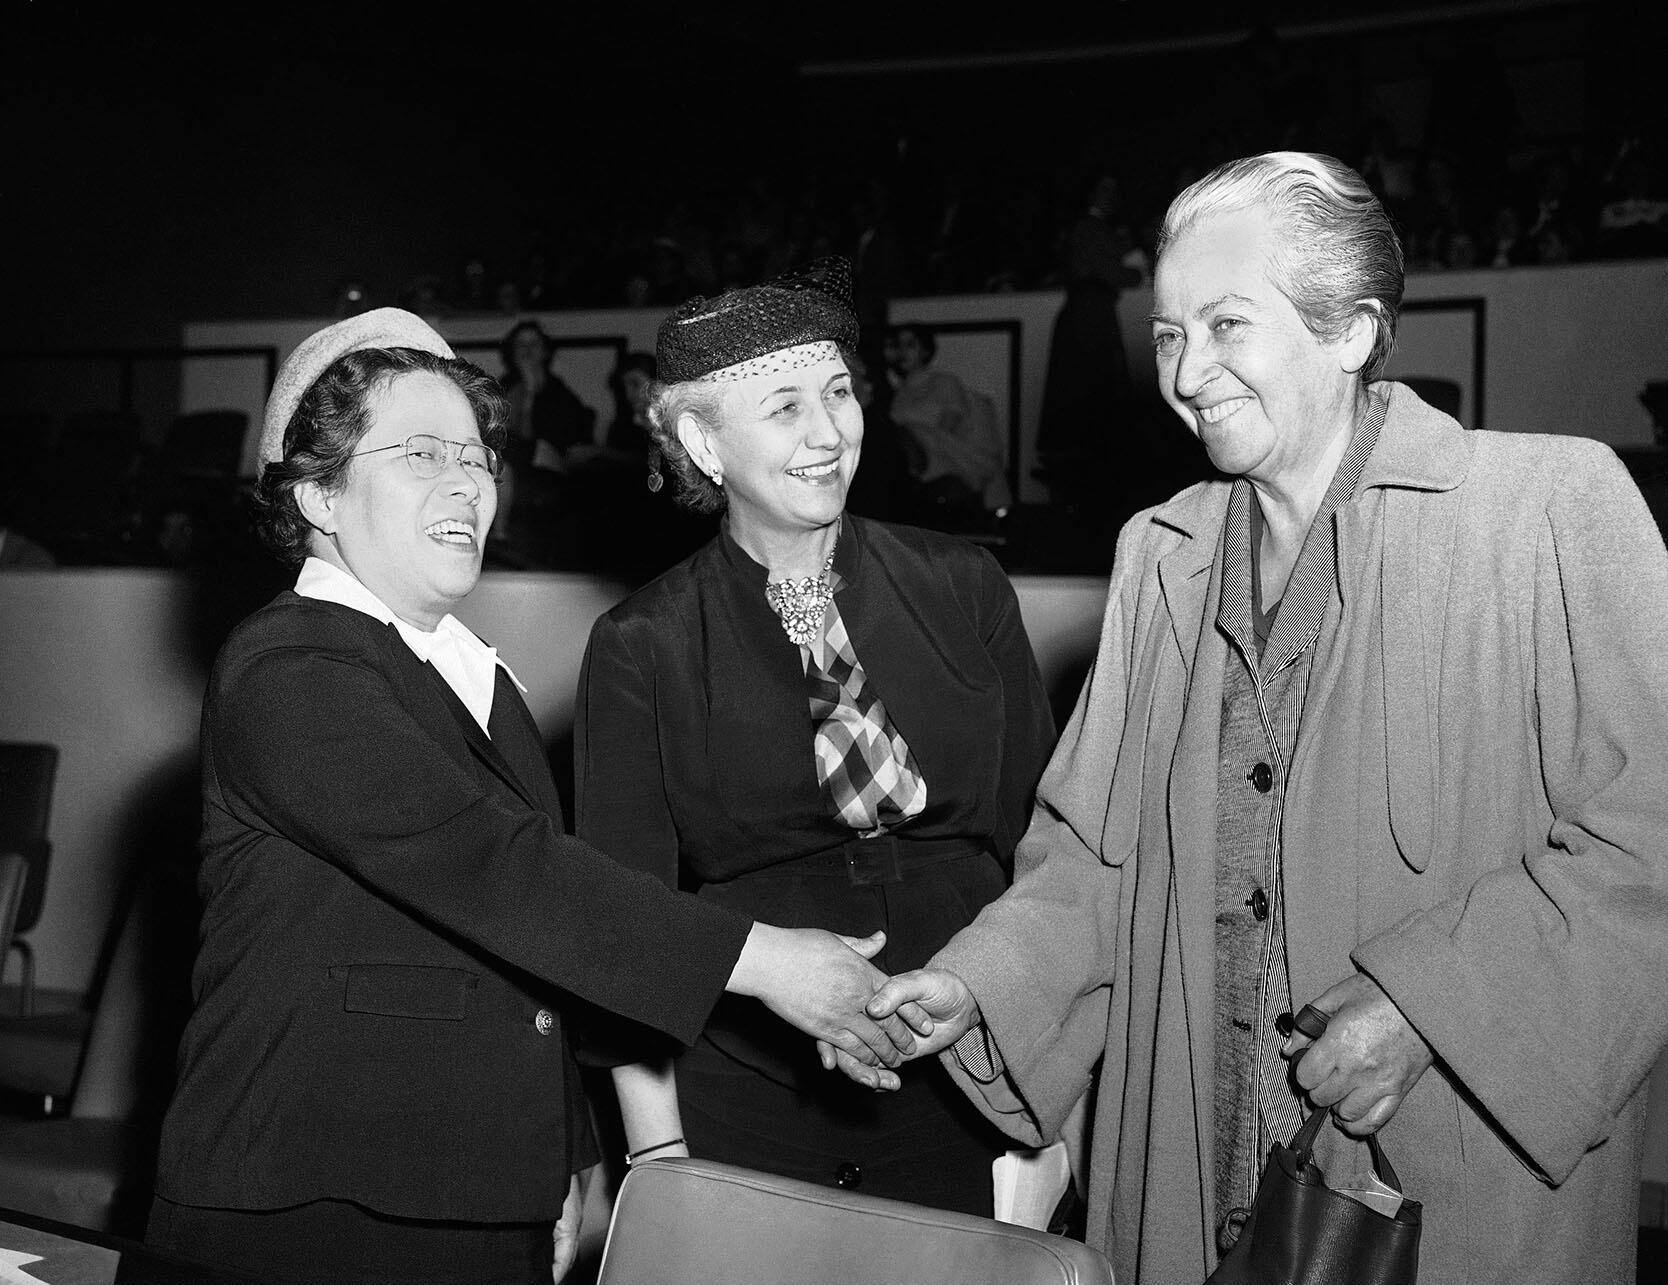 Black and white photo of Gabriela Mistral (right) greeting other attendees at a meeting of the U.N. Commission on the Status of Women in New York, March 1953. (Photo by John Rooney/AP Photo.)